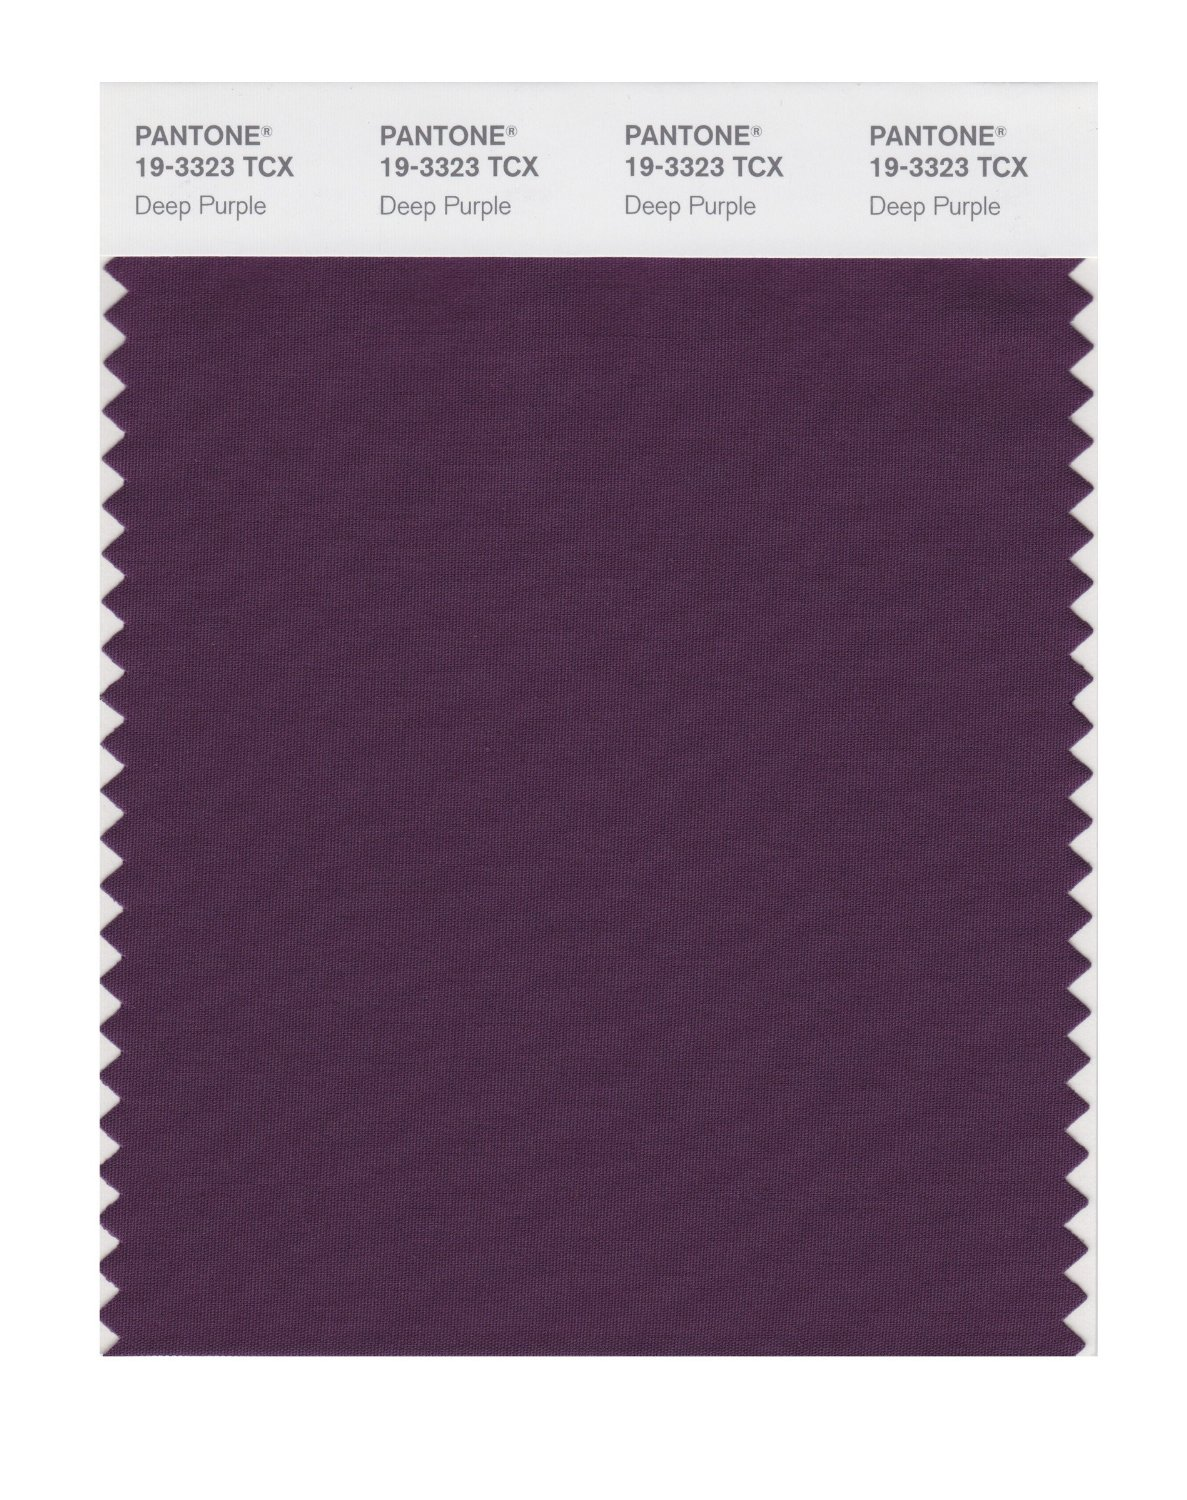 Pantone Smart Swatch 19-3323 Deep Purple